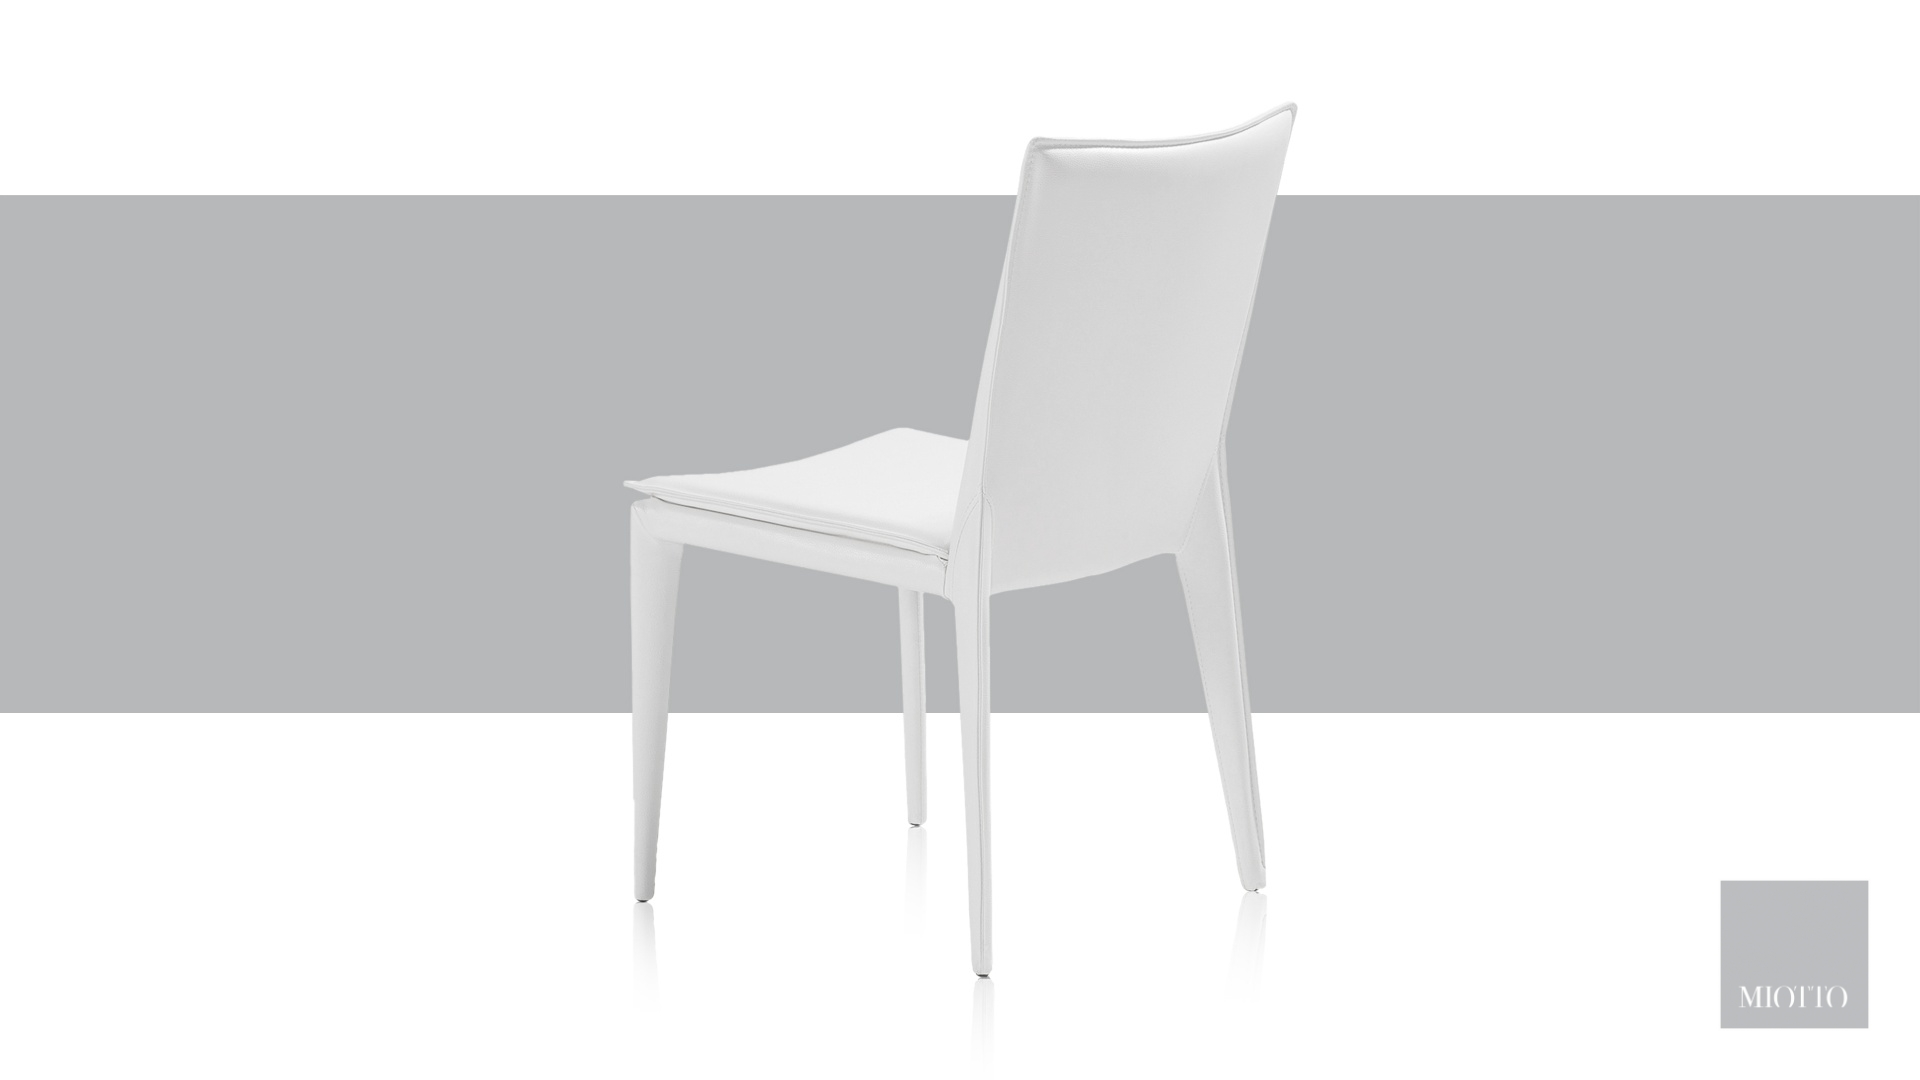 miotto_torano DC white backT miotto dining chair furniture_BQ